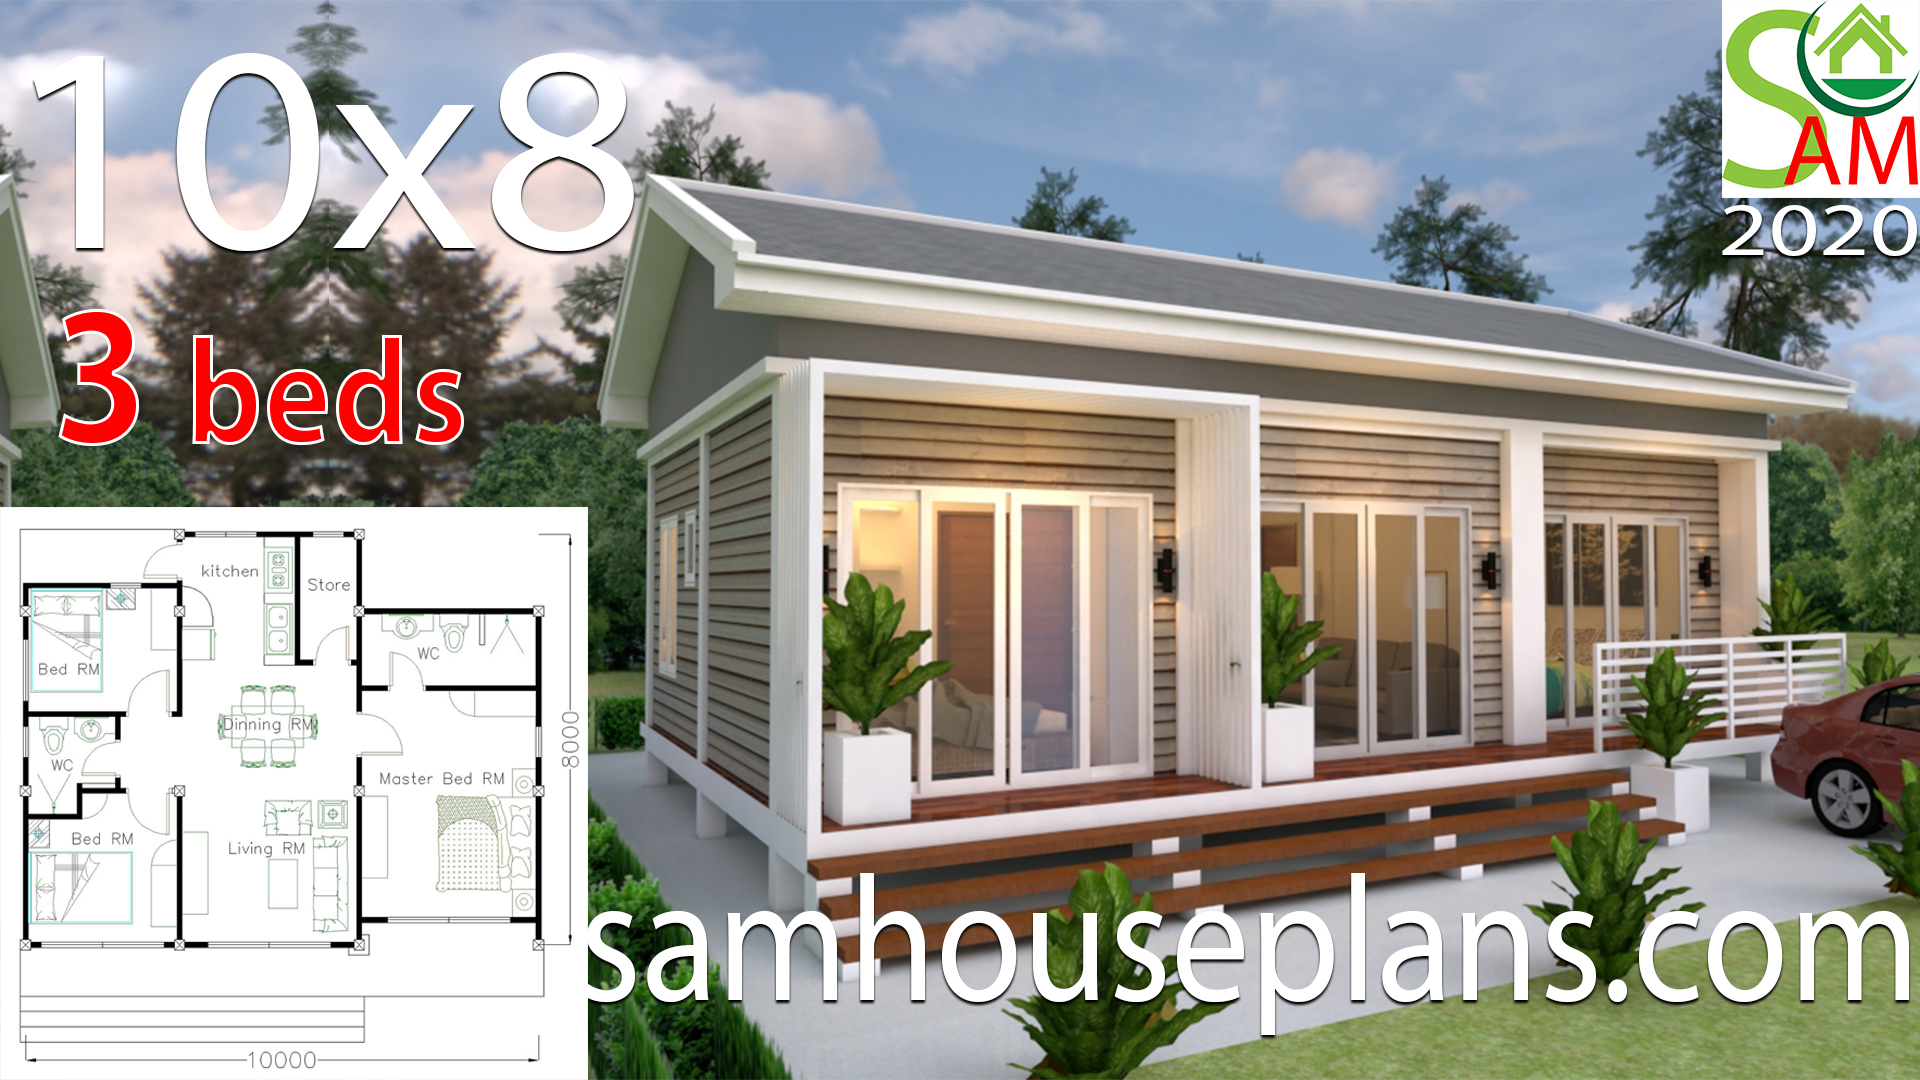 Small House Plans 10x8 with 3 Bedrooms Gable Roof - SamHousePlans